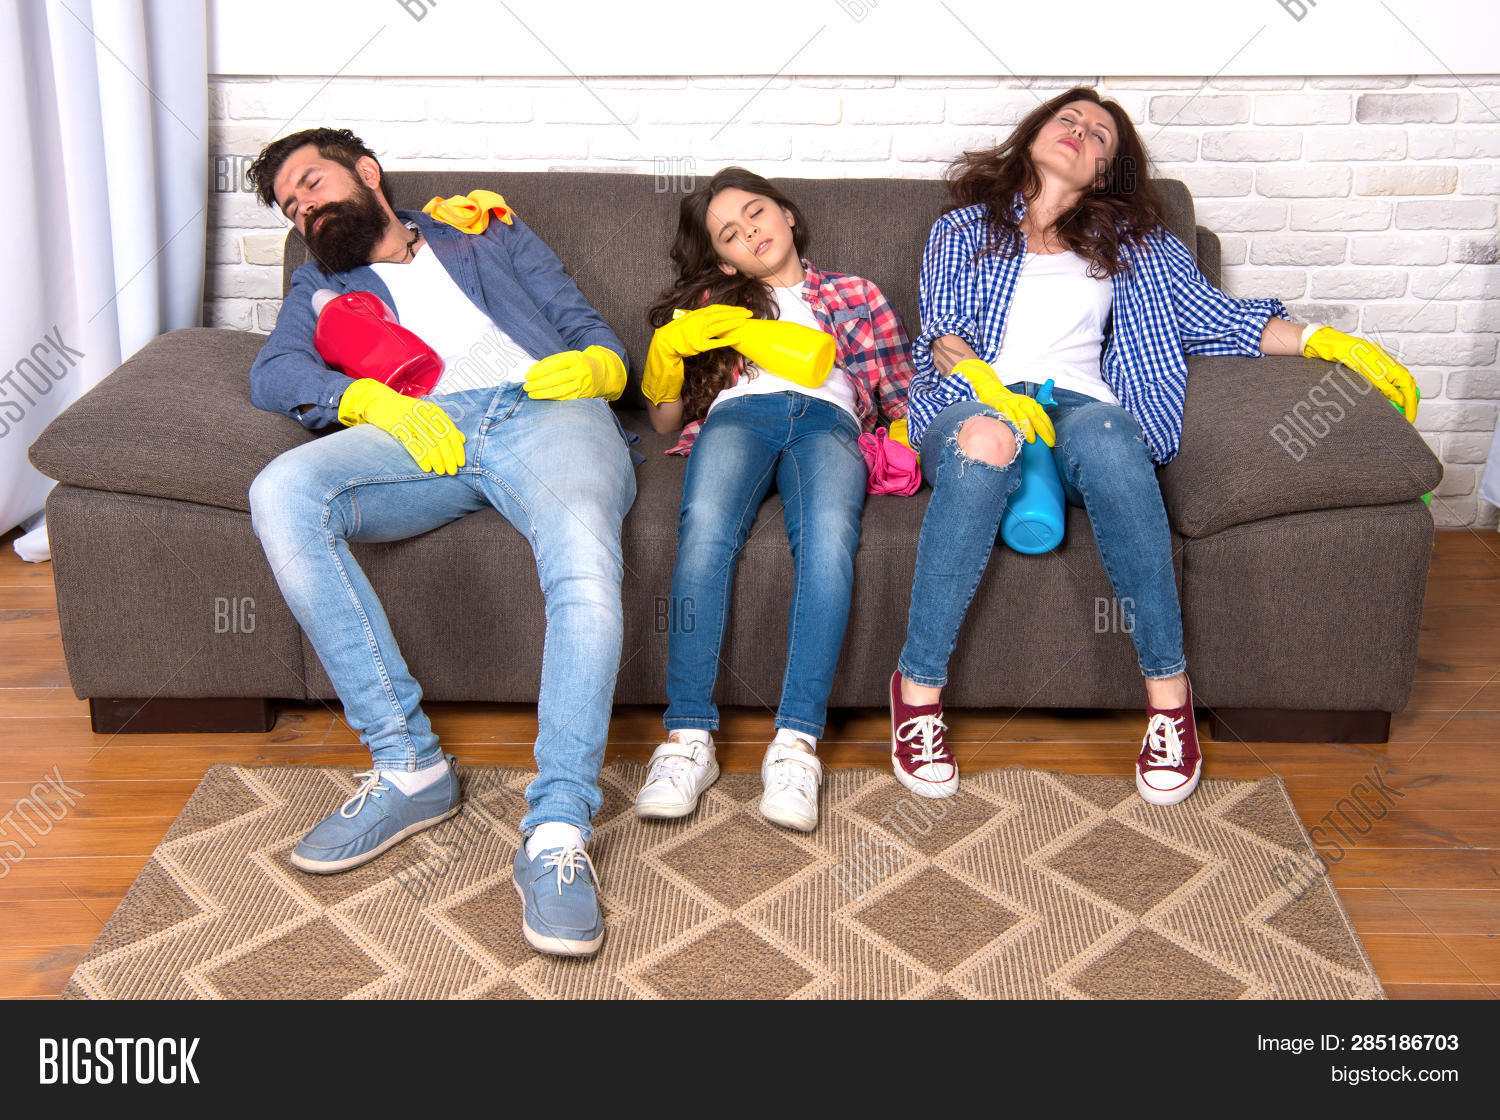 Exhausting Cleaning Image Photo Free Trial Bigstock